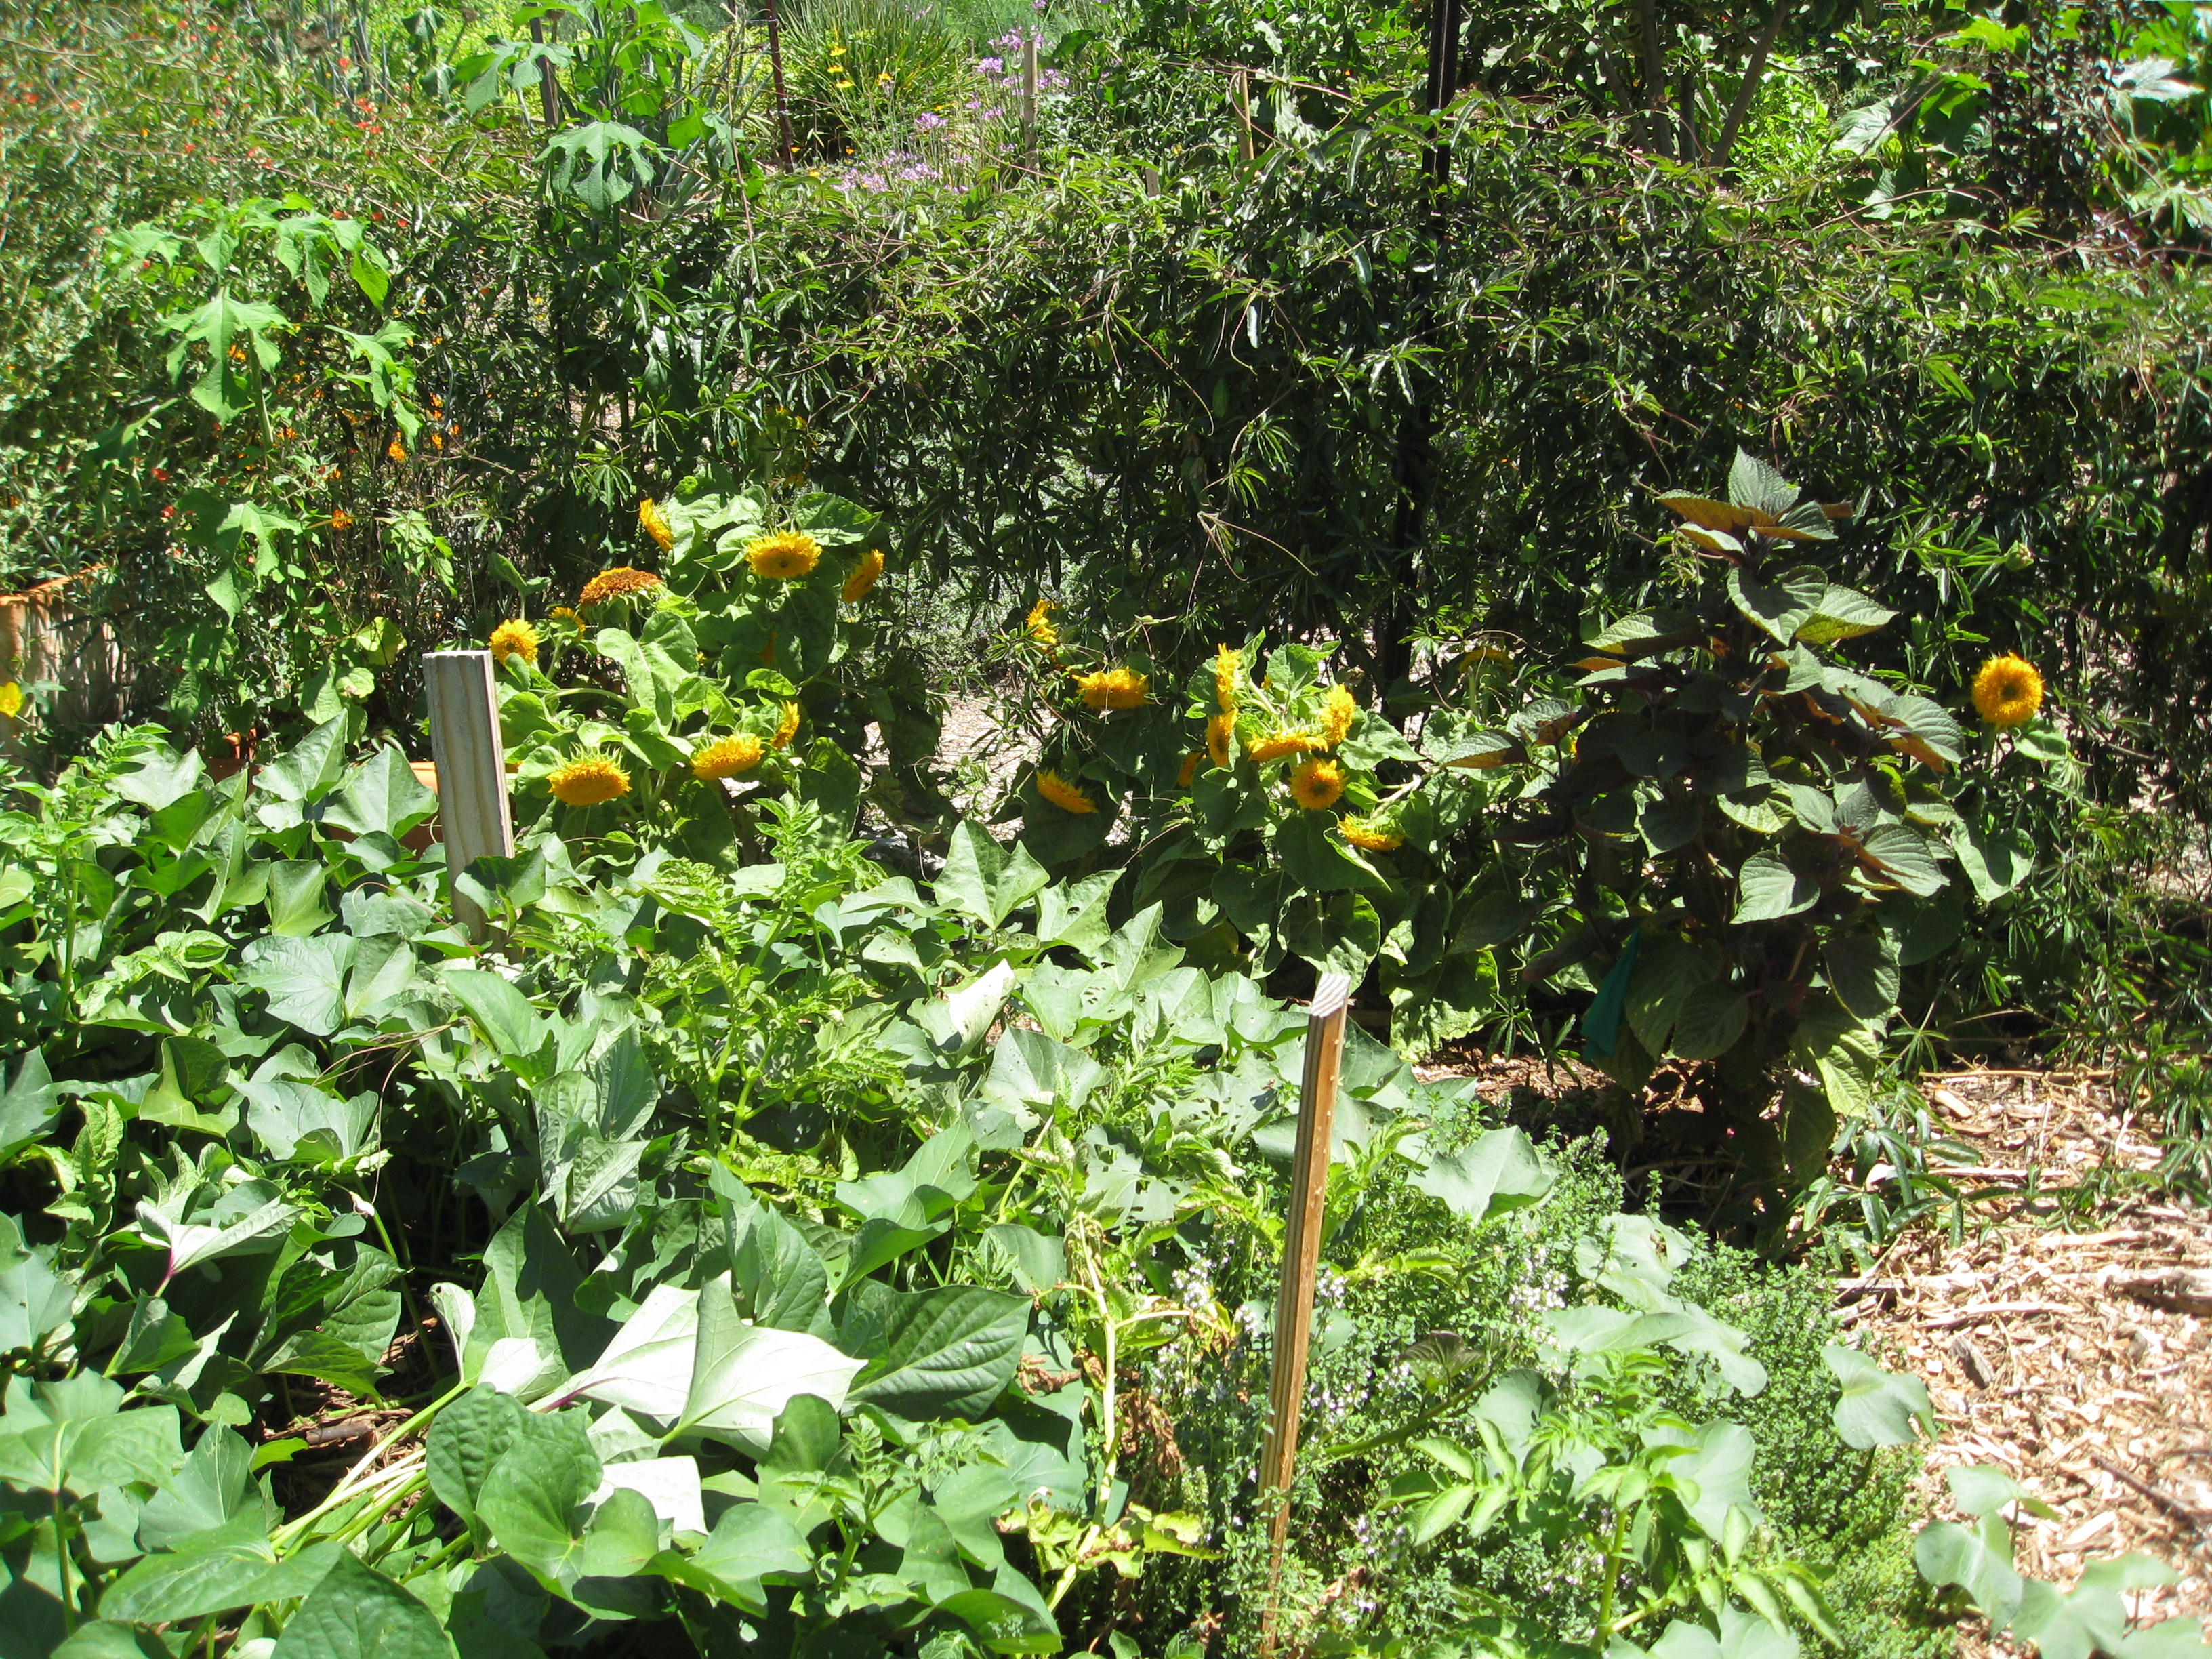 The herb circle isn't just for herbs anymore. Sunflowers, squash and passion fruit have taken over.